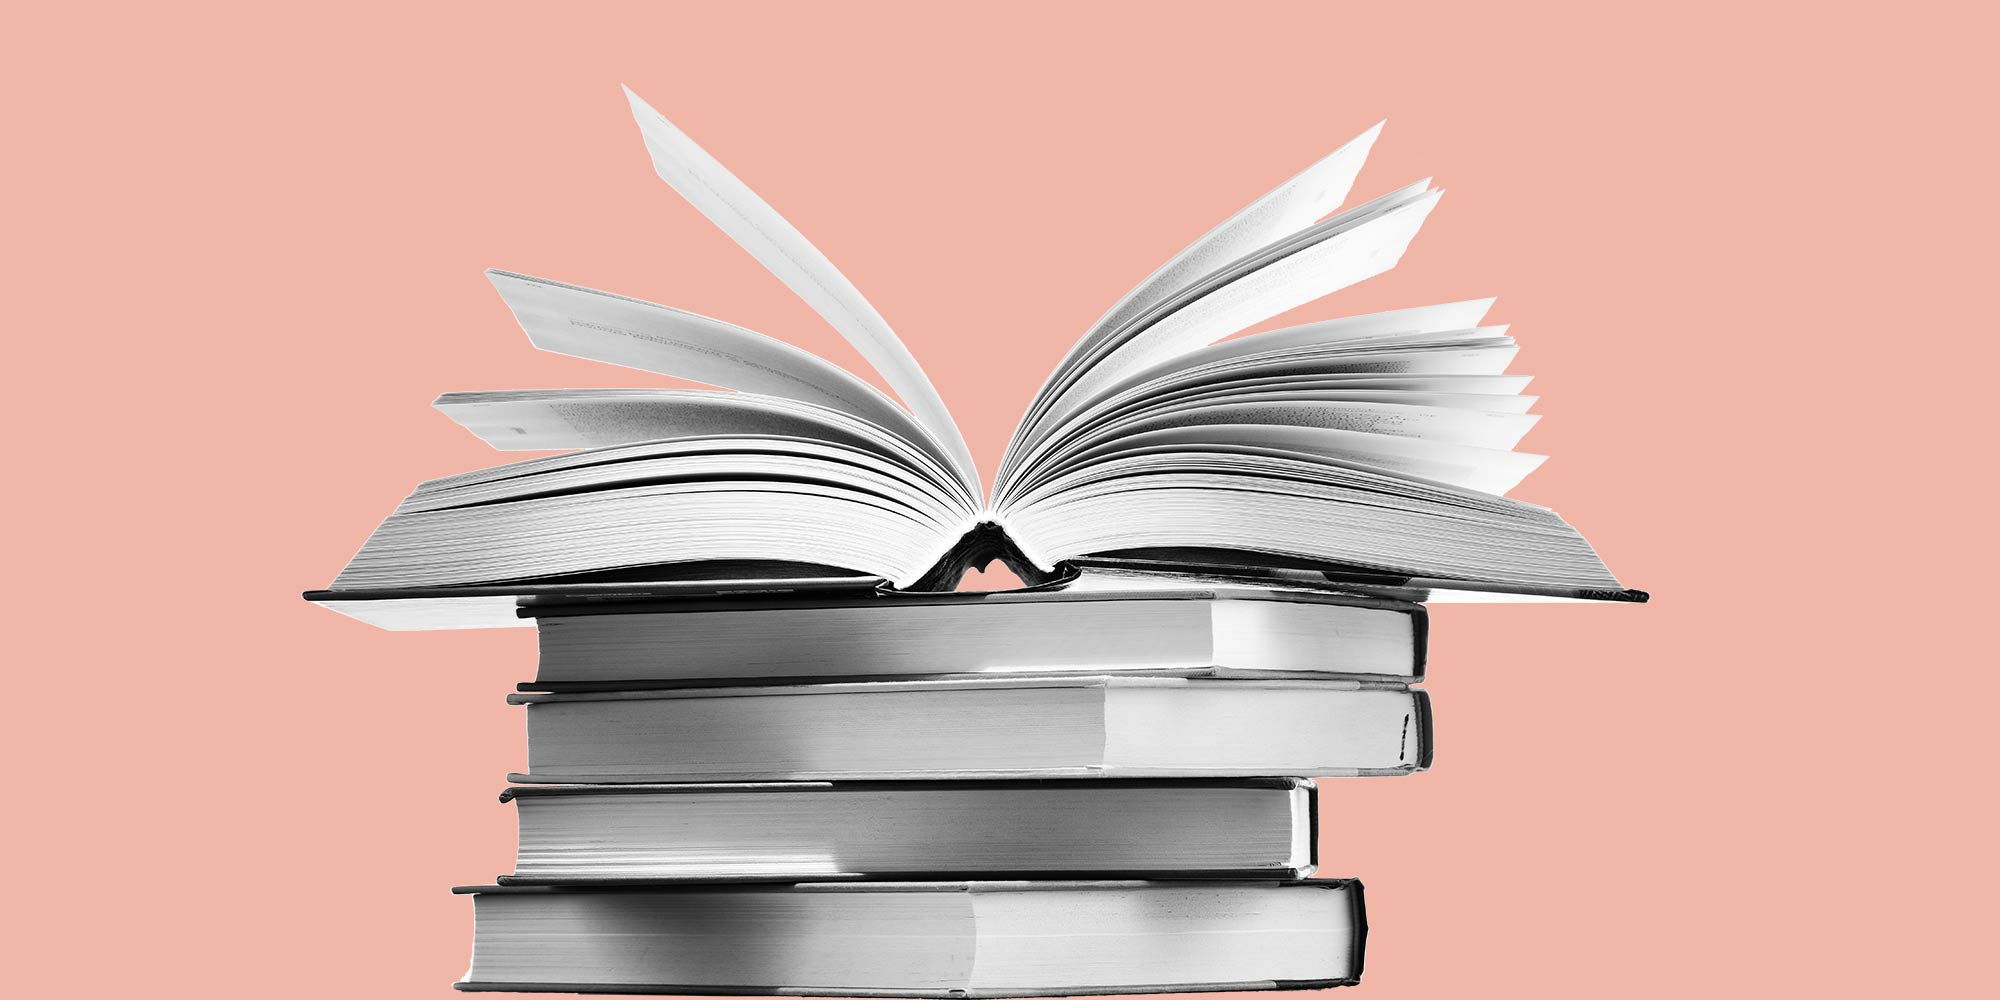 Stack of books on an peach background. College students in recovery